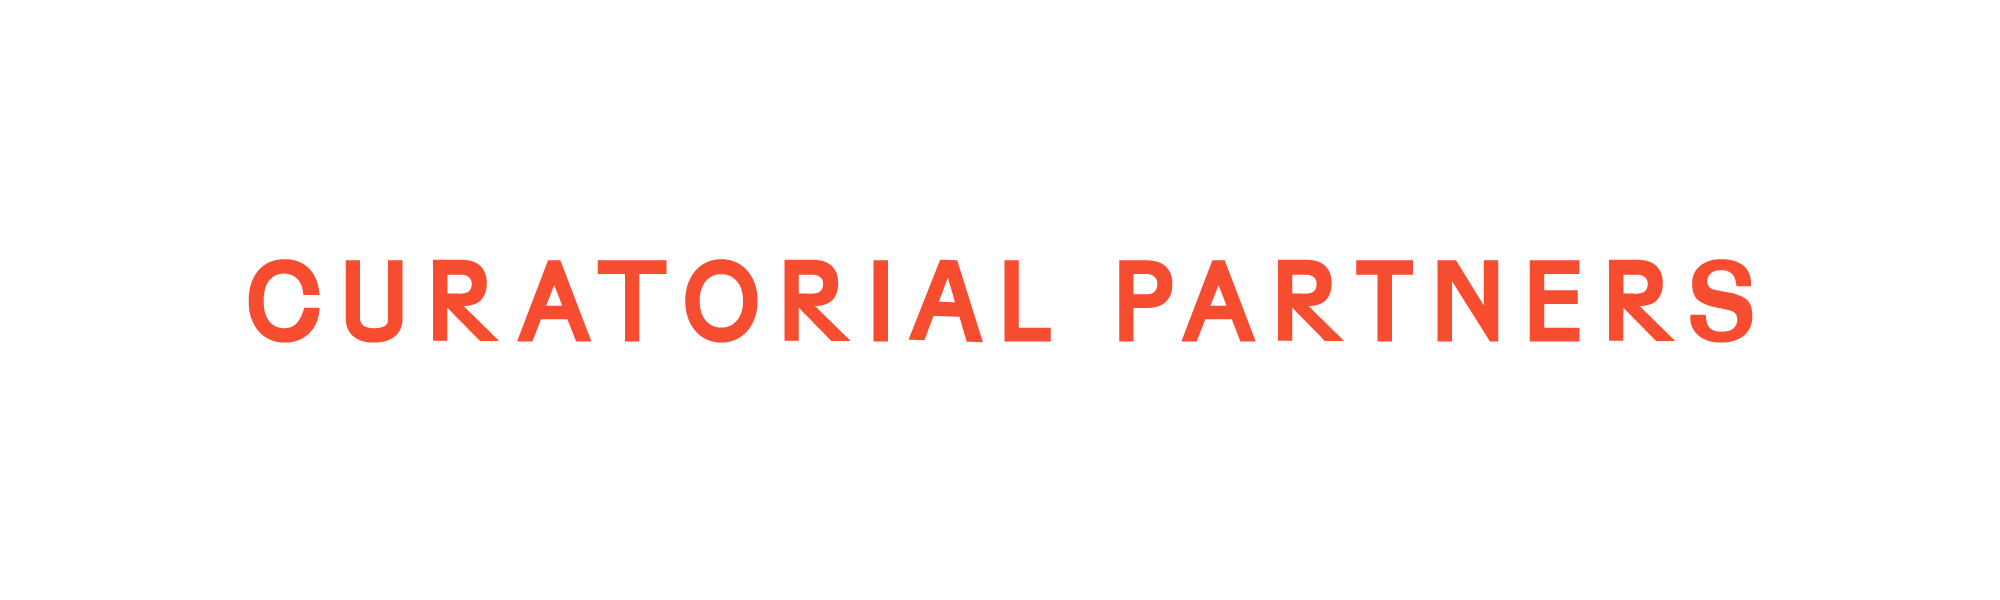 Curatorial Partners